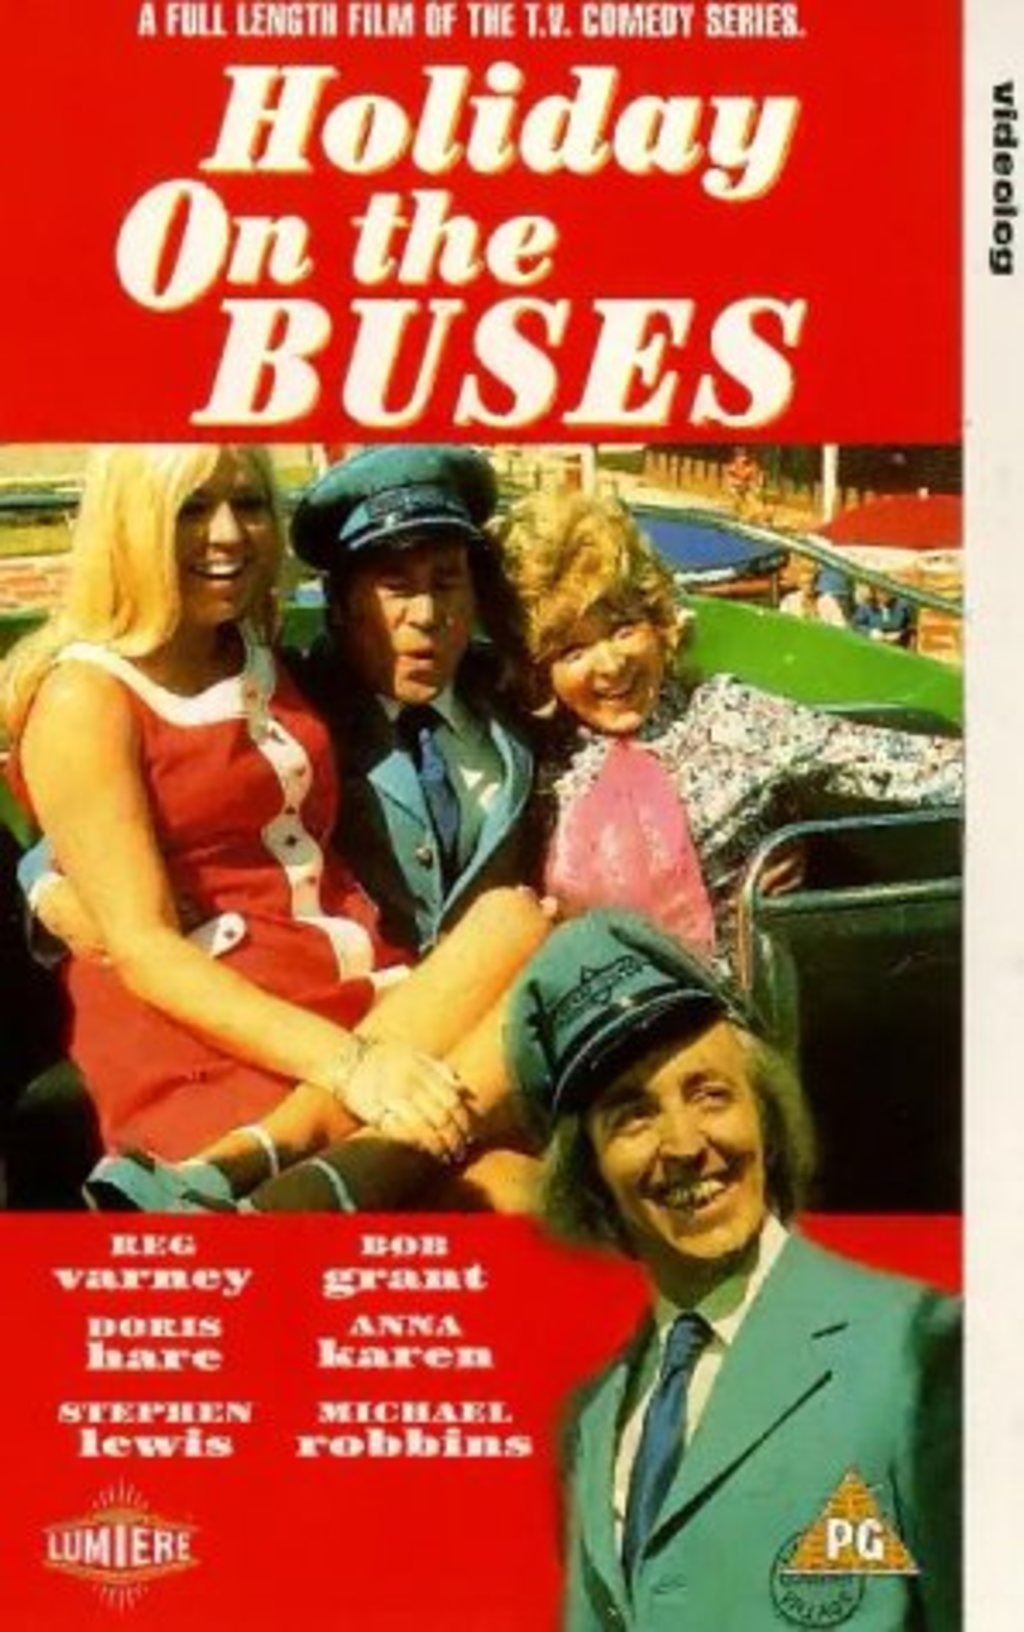 Watch Holiday On The Buses On Netflix Today